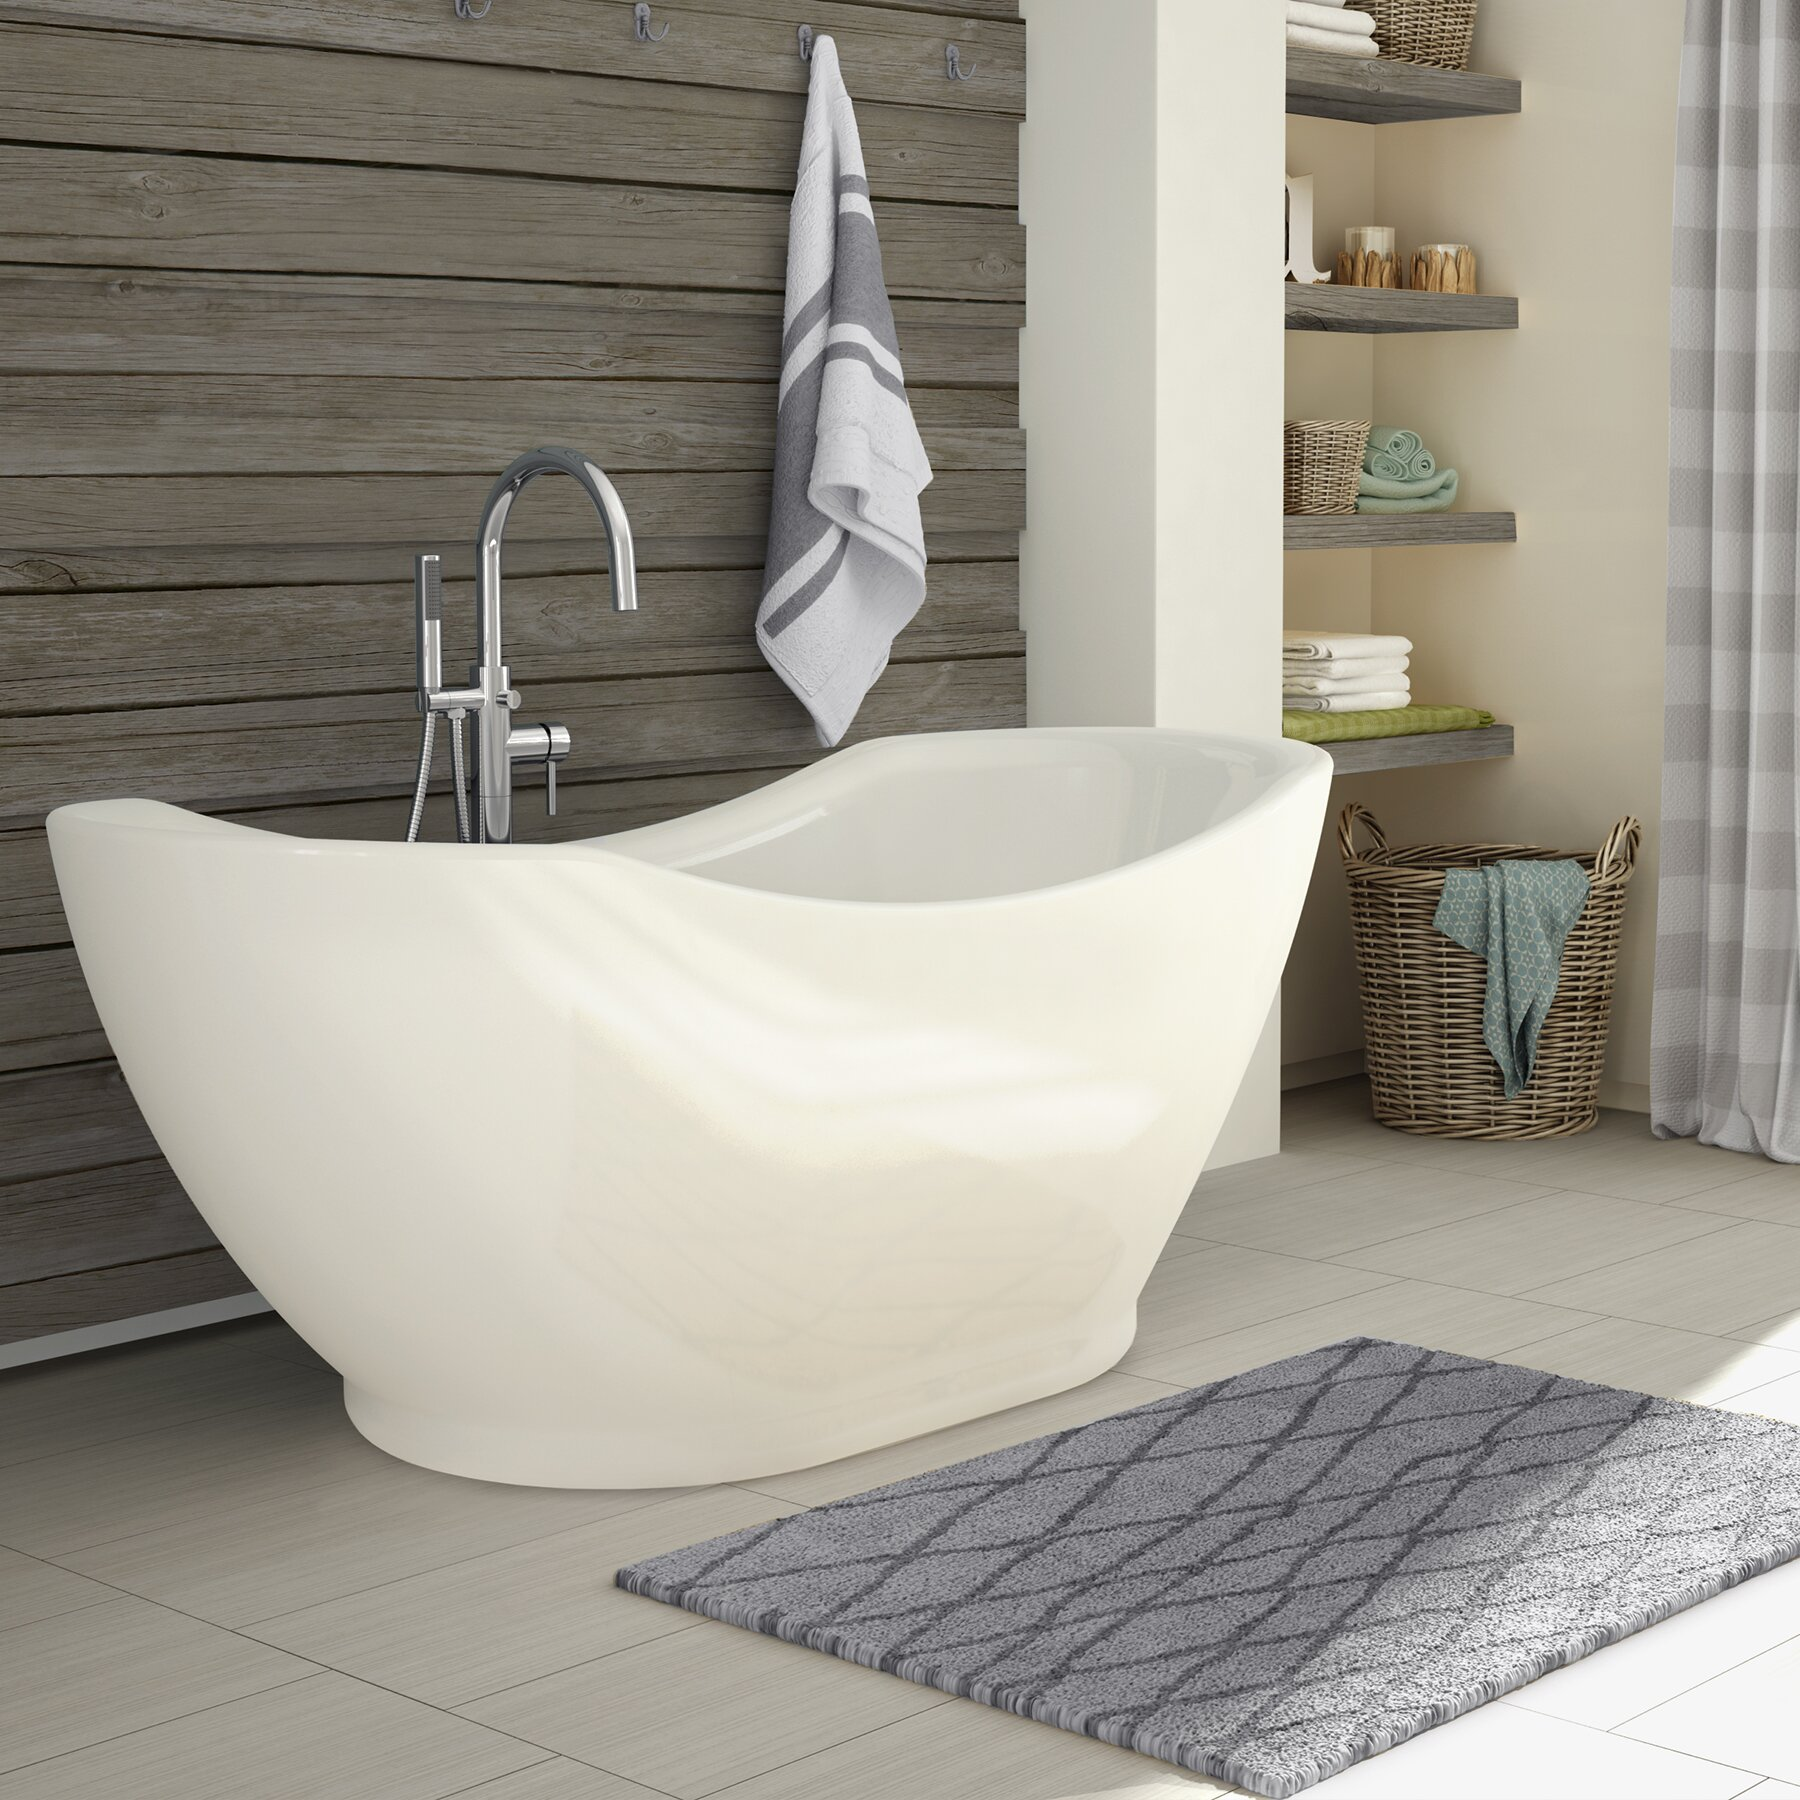 a amp e bath and shower salacia 67 quot x 28 quot soaking bathtub kit mb stone care bath and shower kit hardwood guides